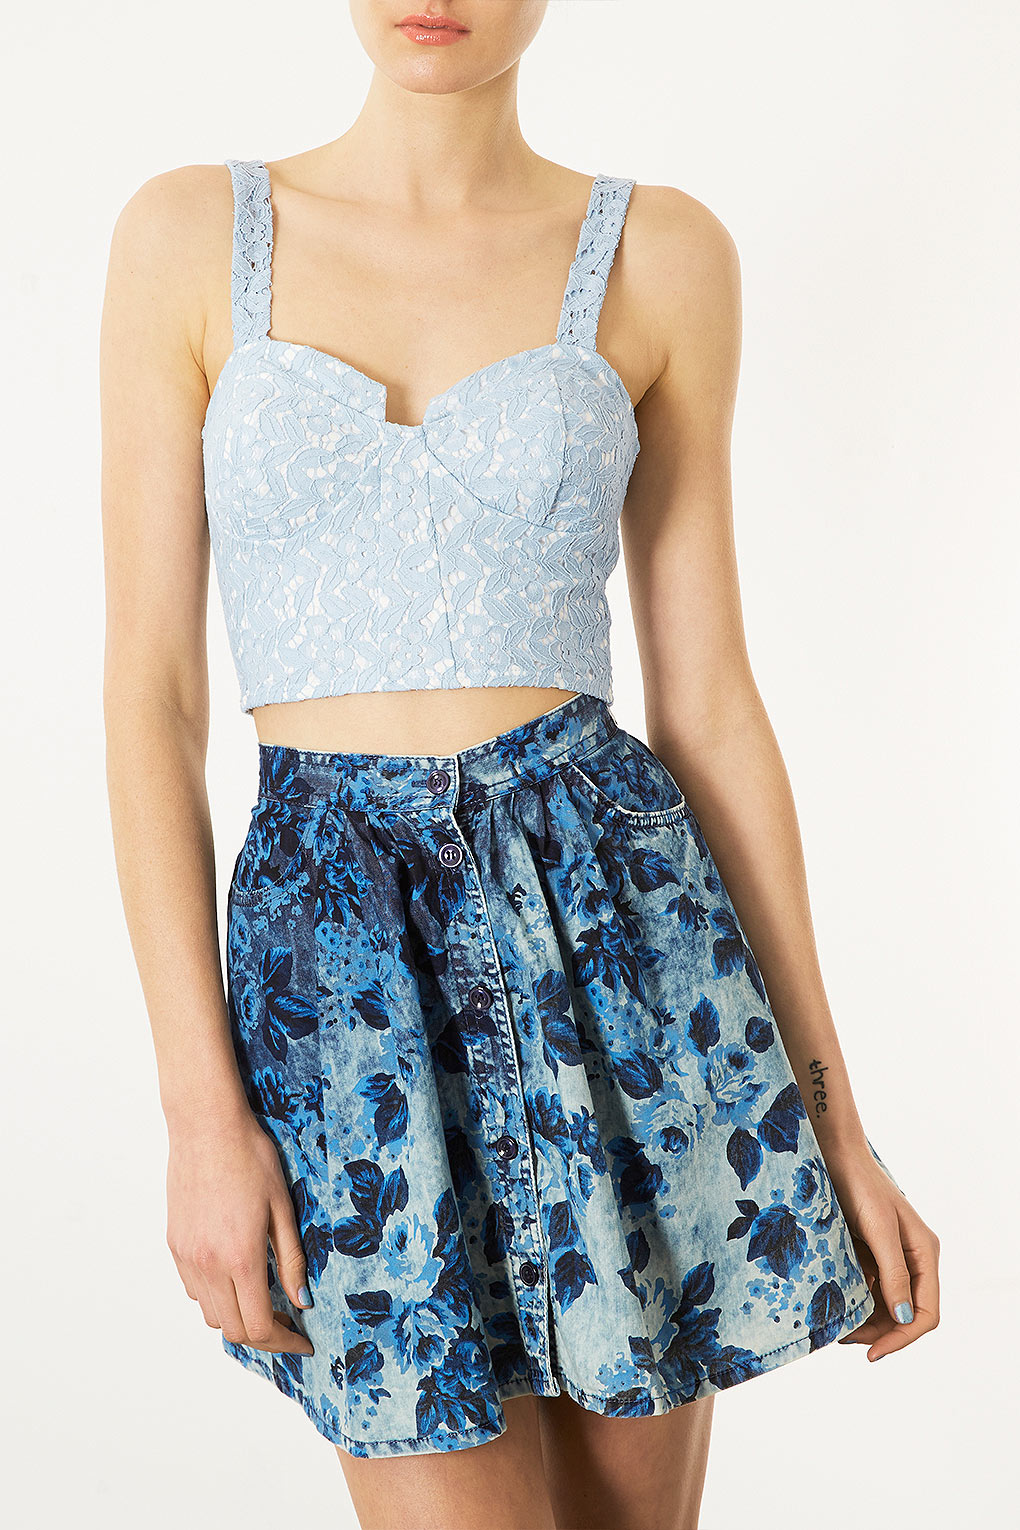 Topshop Lace Corset Bralet Top In Blue Lyst